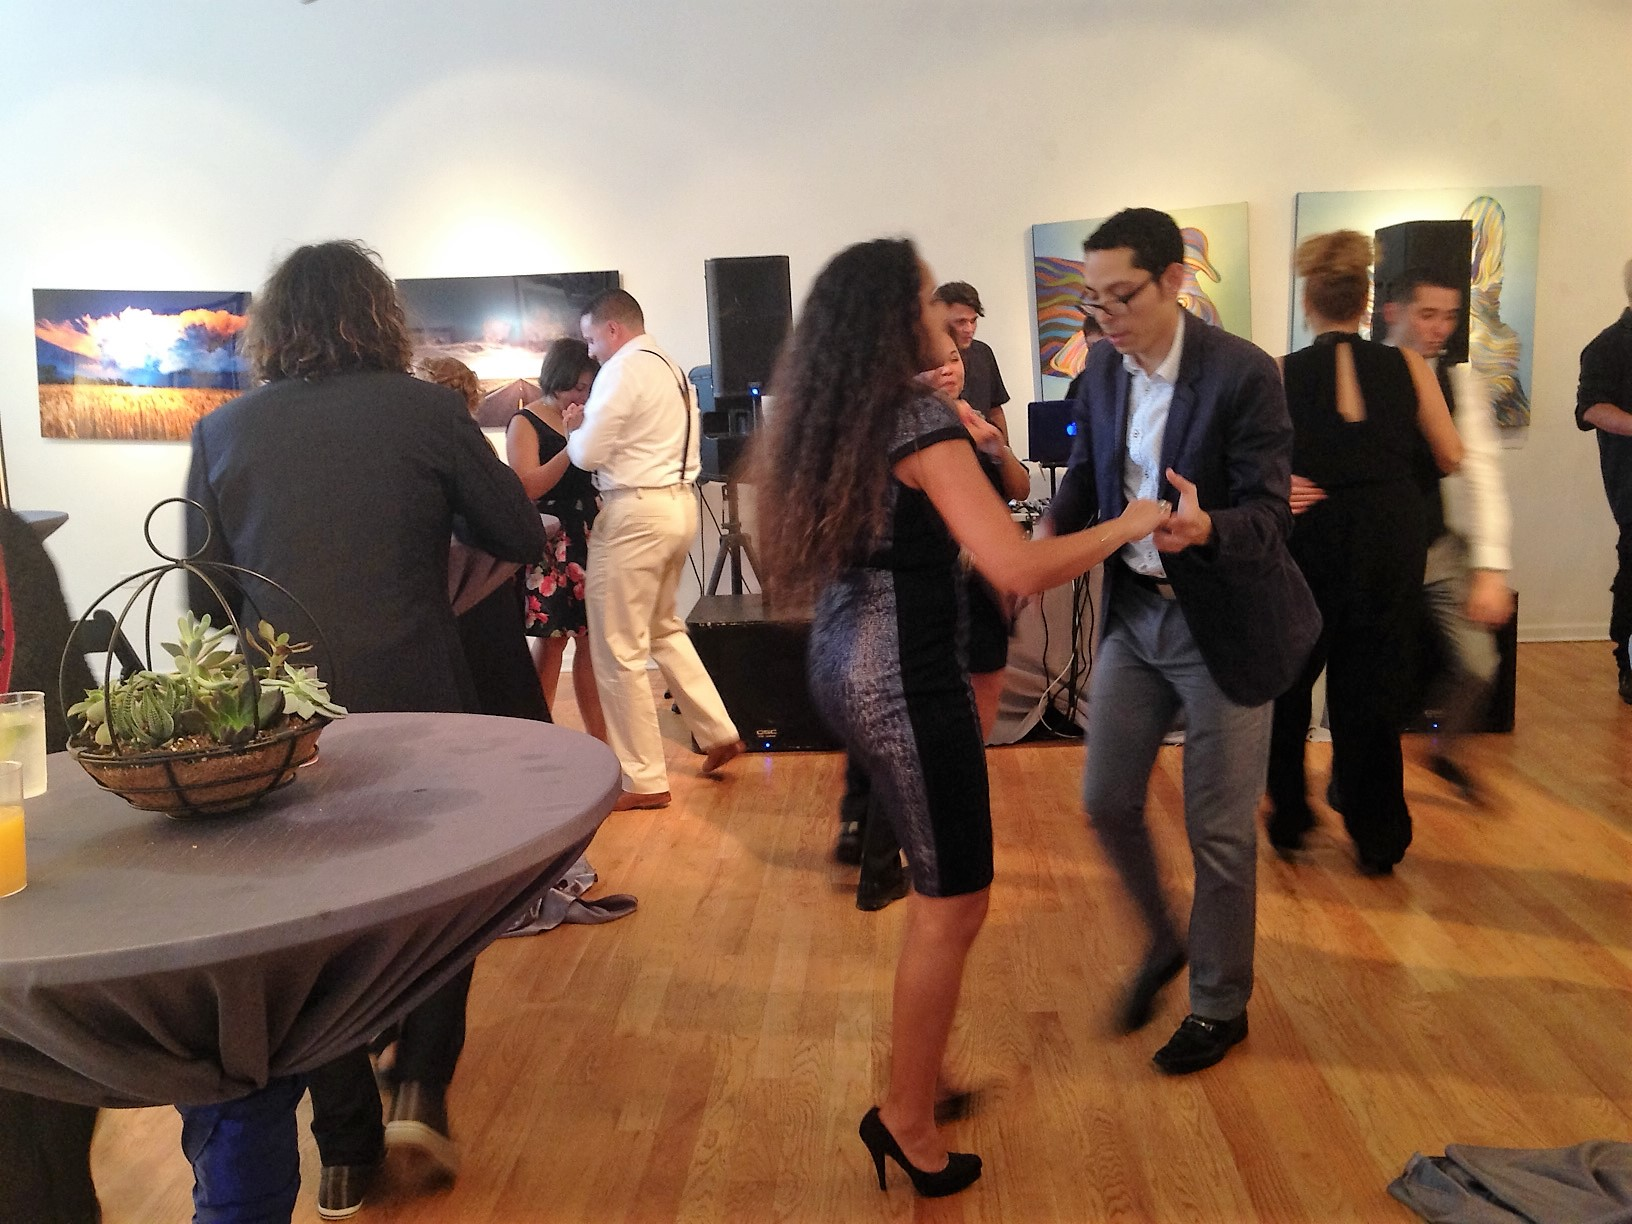 Photo #20 Full Venue at Jackson Junge Gallery